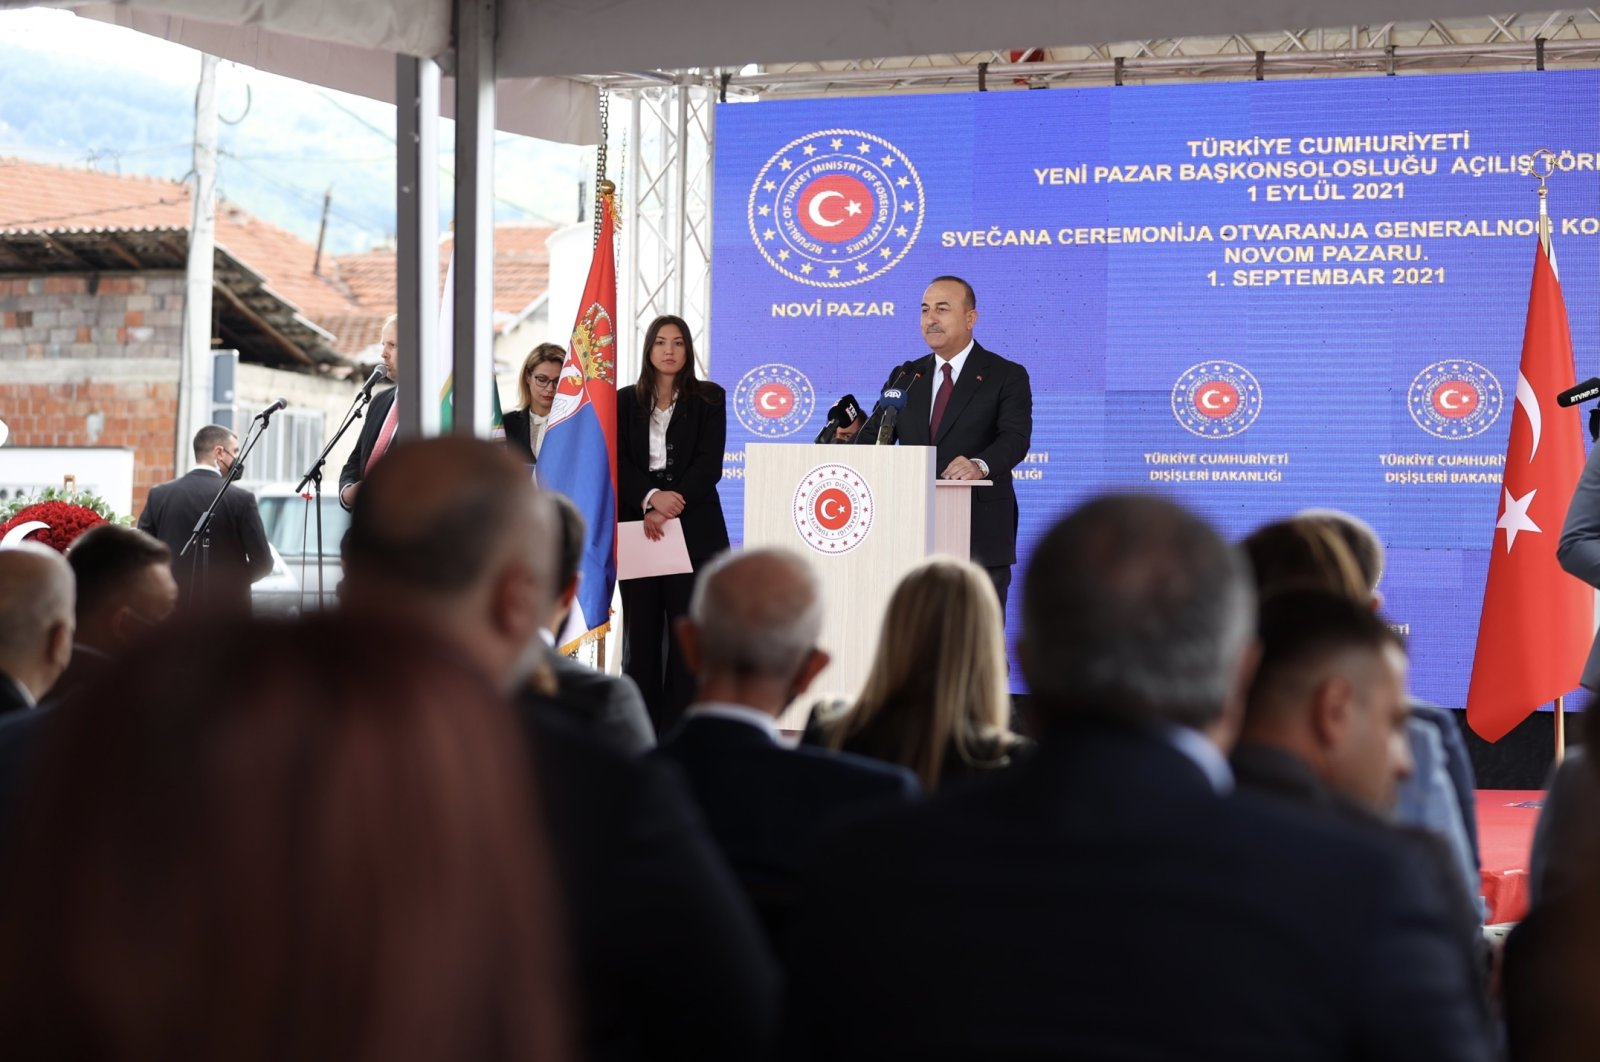 Foreign Minister Mevlüt Çavuşoğlu speaks at the opening of the Turkish Consulate General in Novi Pazar, Serbia, Sept. 1, 2021. (AA Photo)